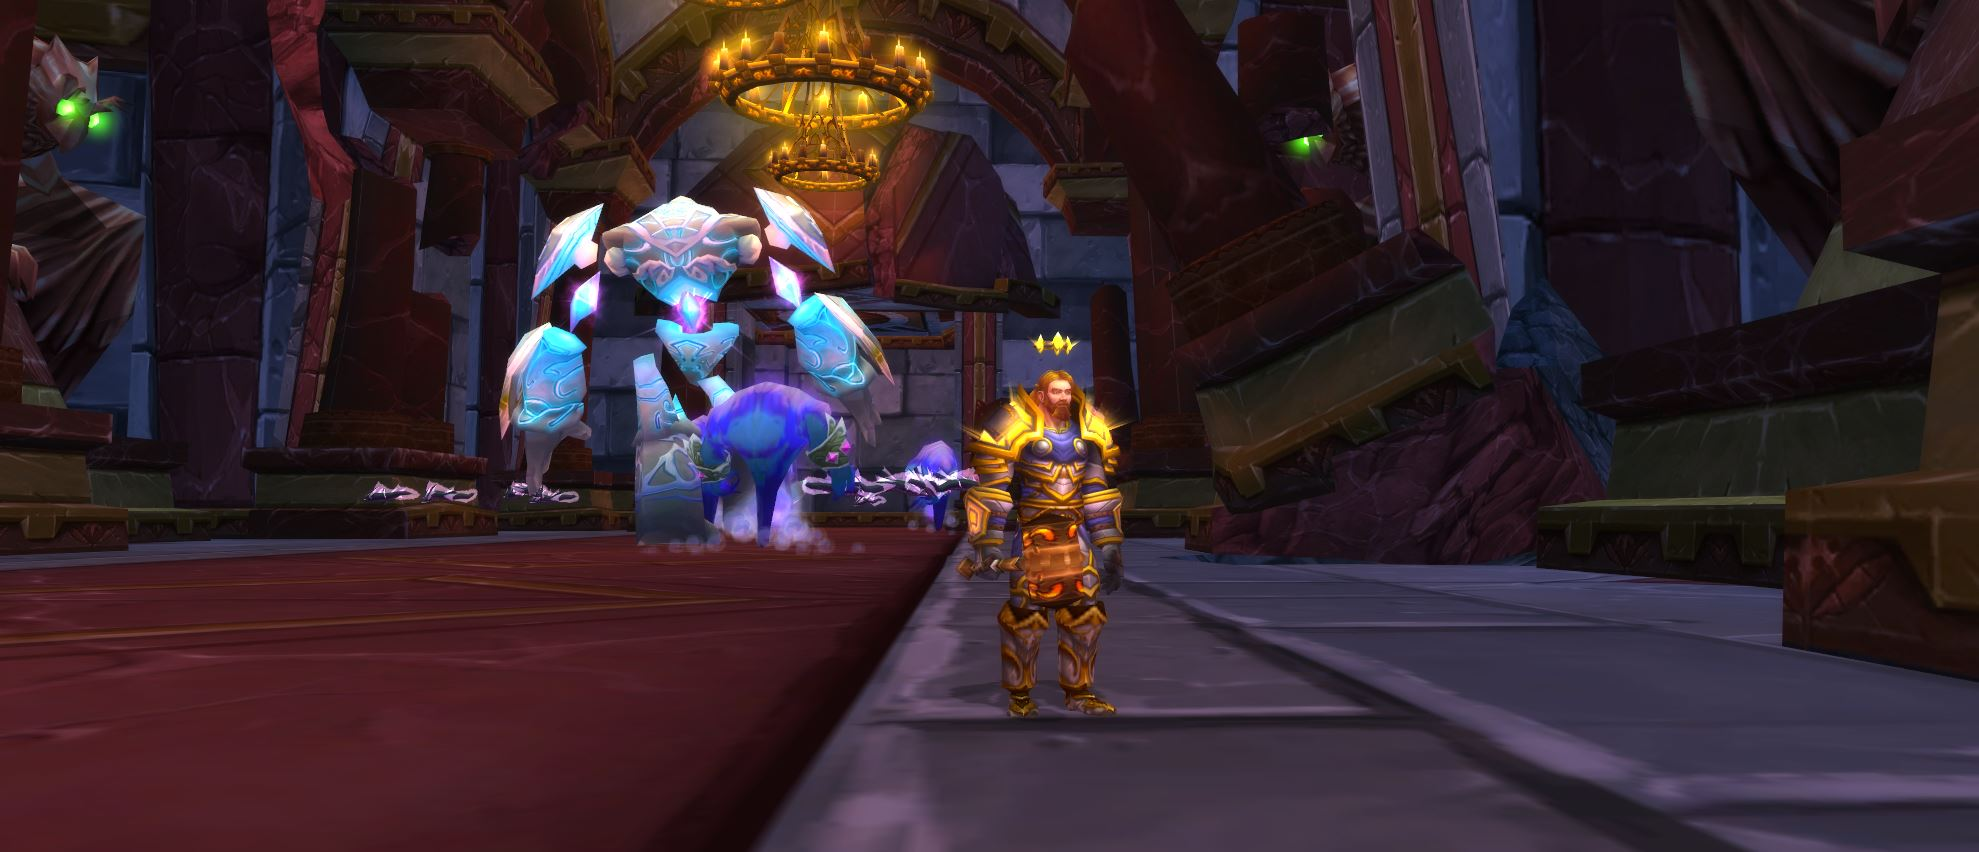 tbc classic pve retribution paladin enchants & consumables burning crusade classic